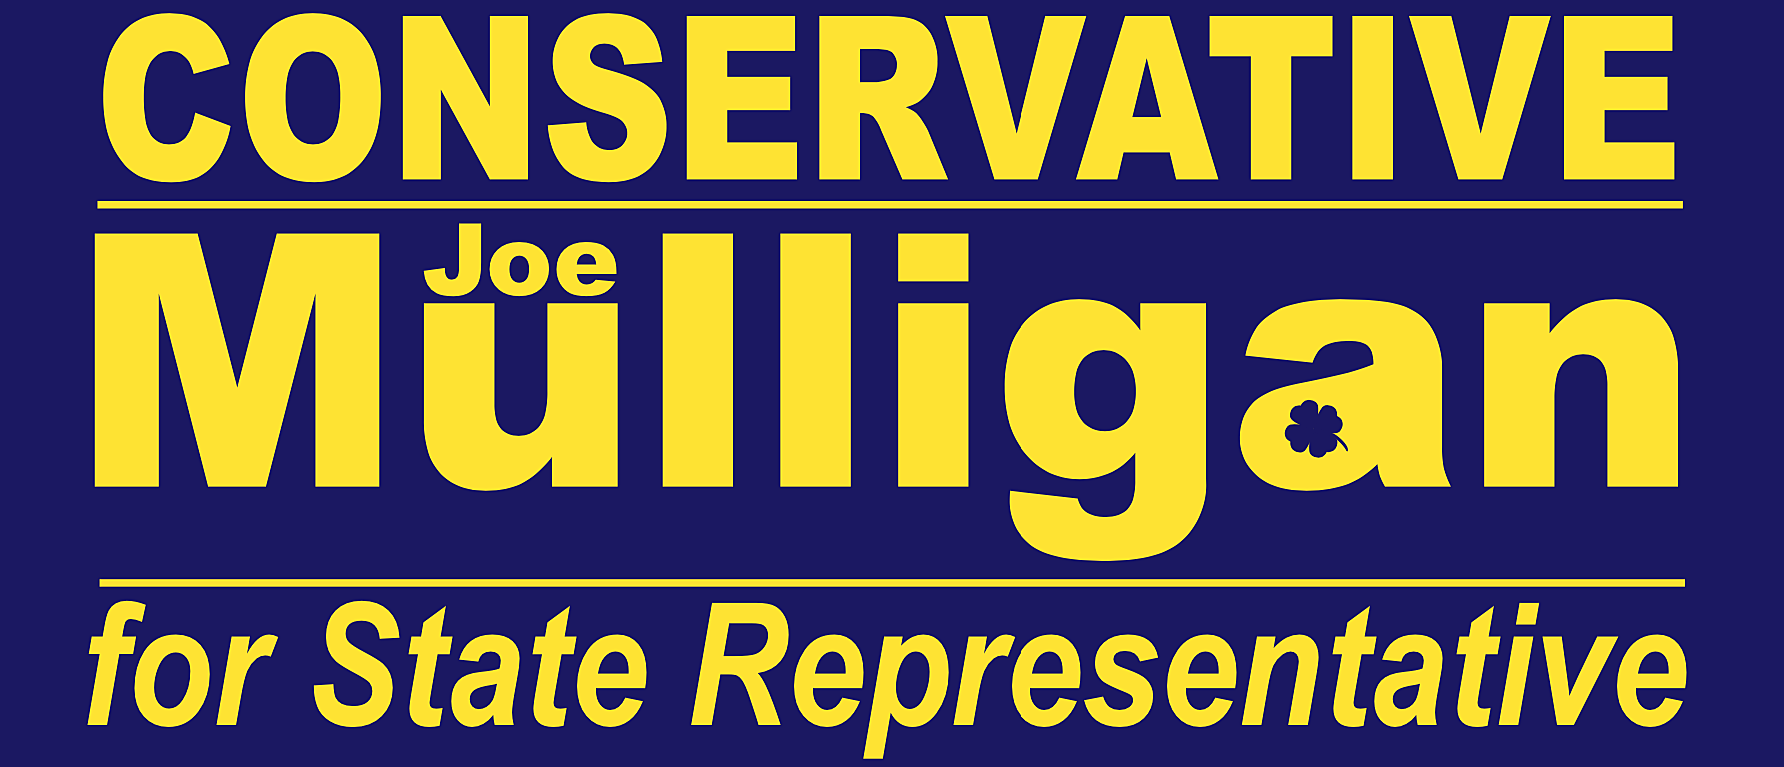 Mulligan for St. Rep.: General Fund